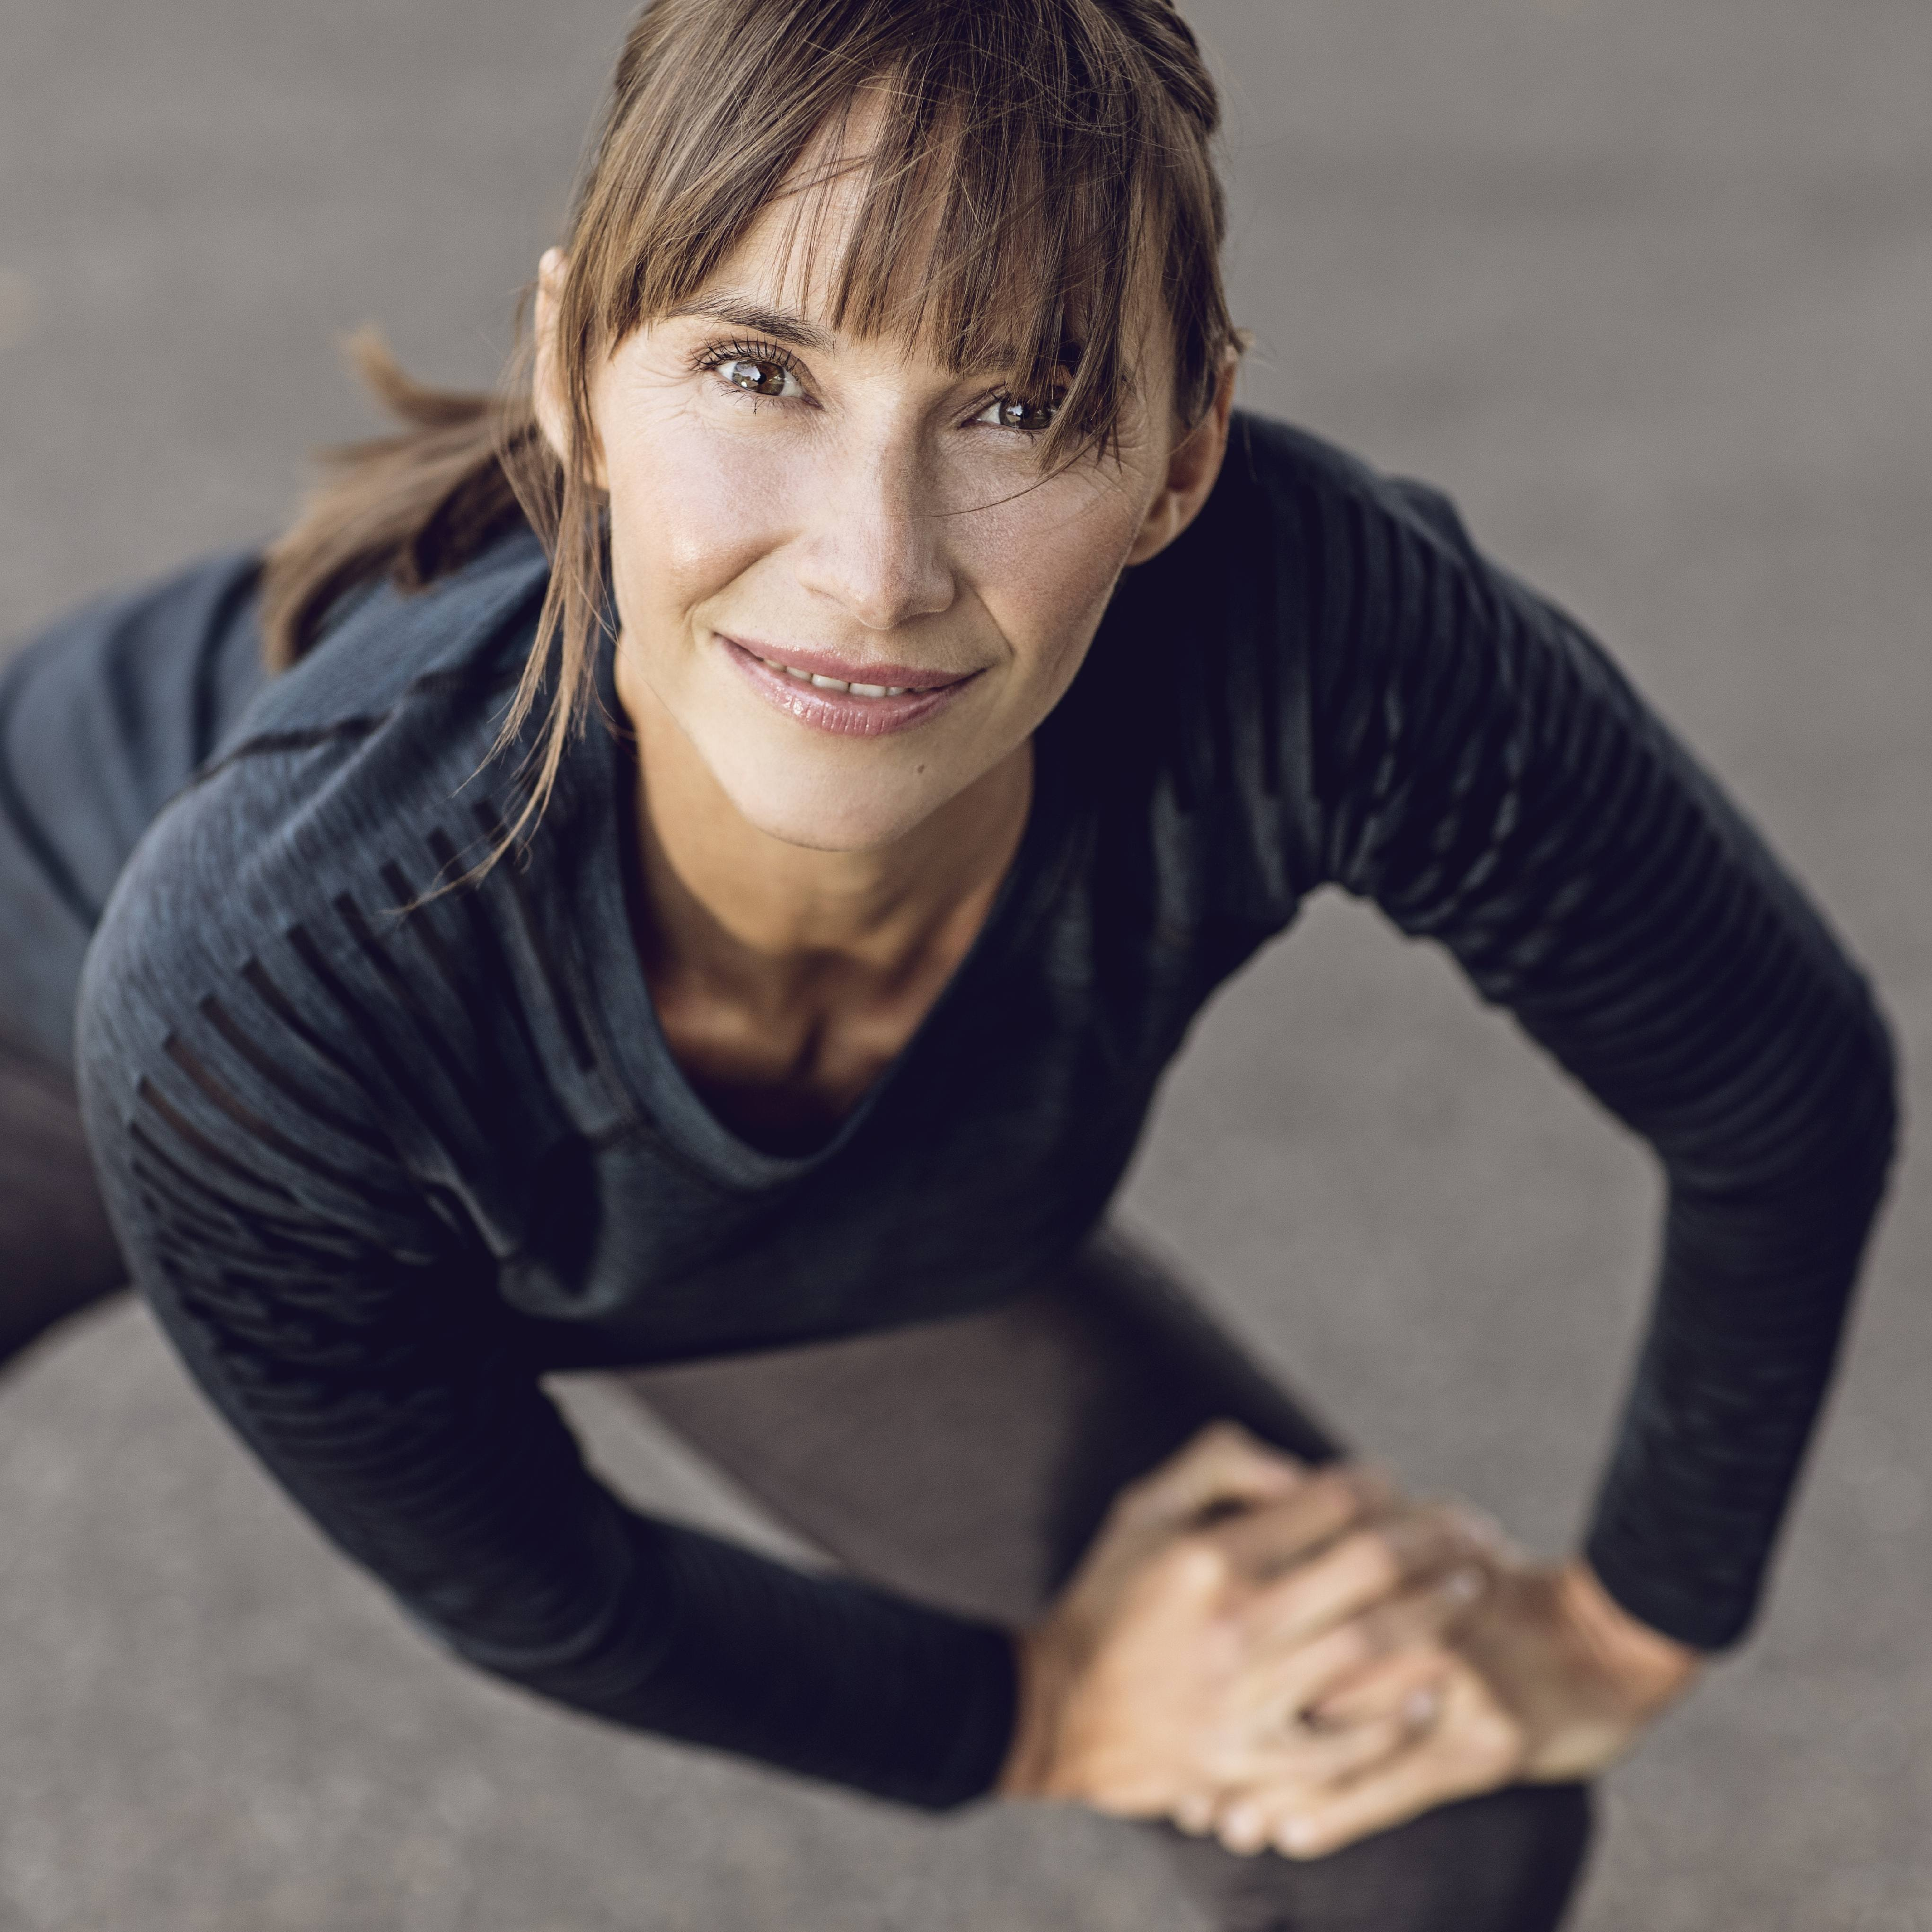 a middle aged white woman smiling and doing warmup exercise and stretching